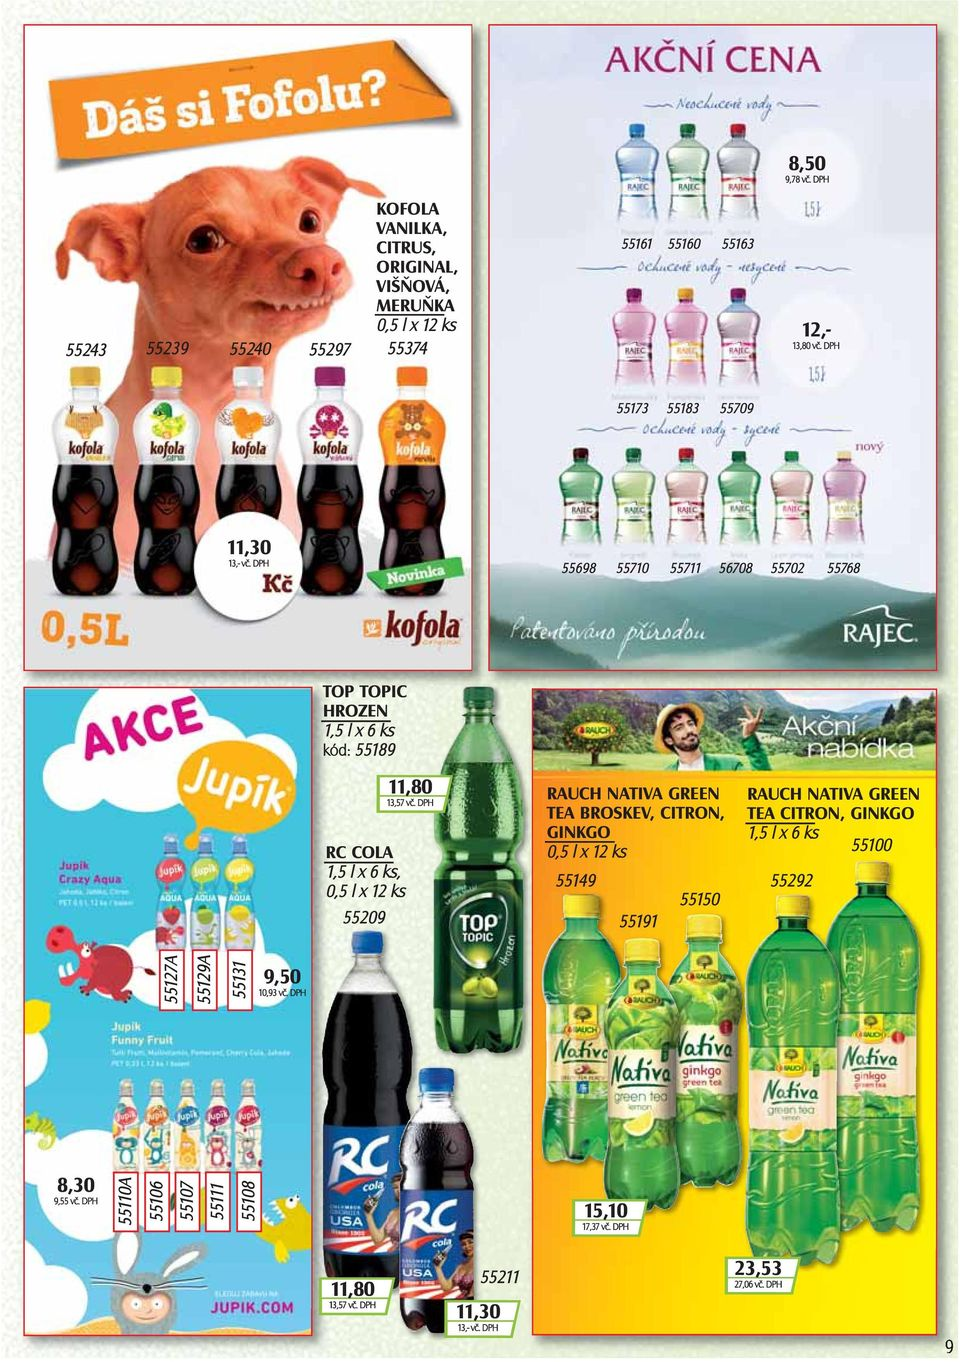 DPH RC COLA 1,5 l x 6 ks, 0,5 l x 12 ks 55209 RAUCH NATIVA GREEN TEA BROSKEV, CITRON, GINKGO 0,5 l x 12 ks 55149 55150 55191 RAUCH NATIVA GREEN TEA CITRON,